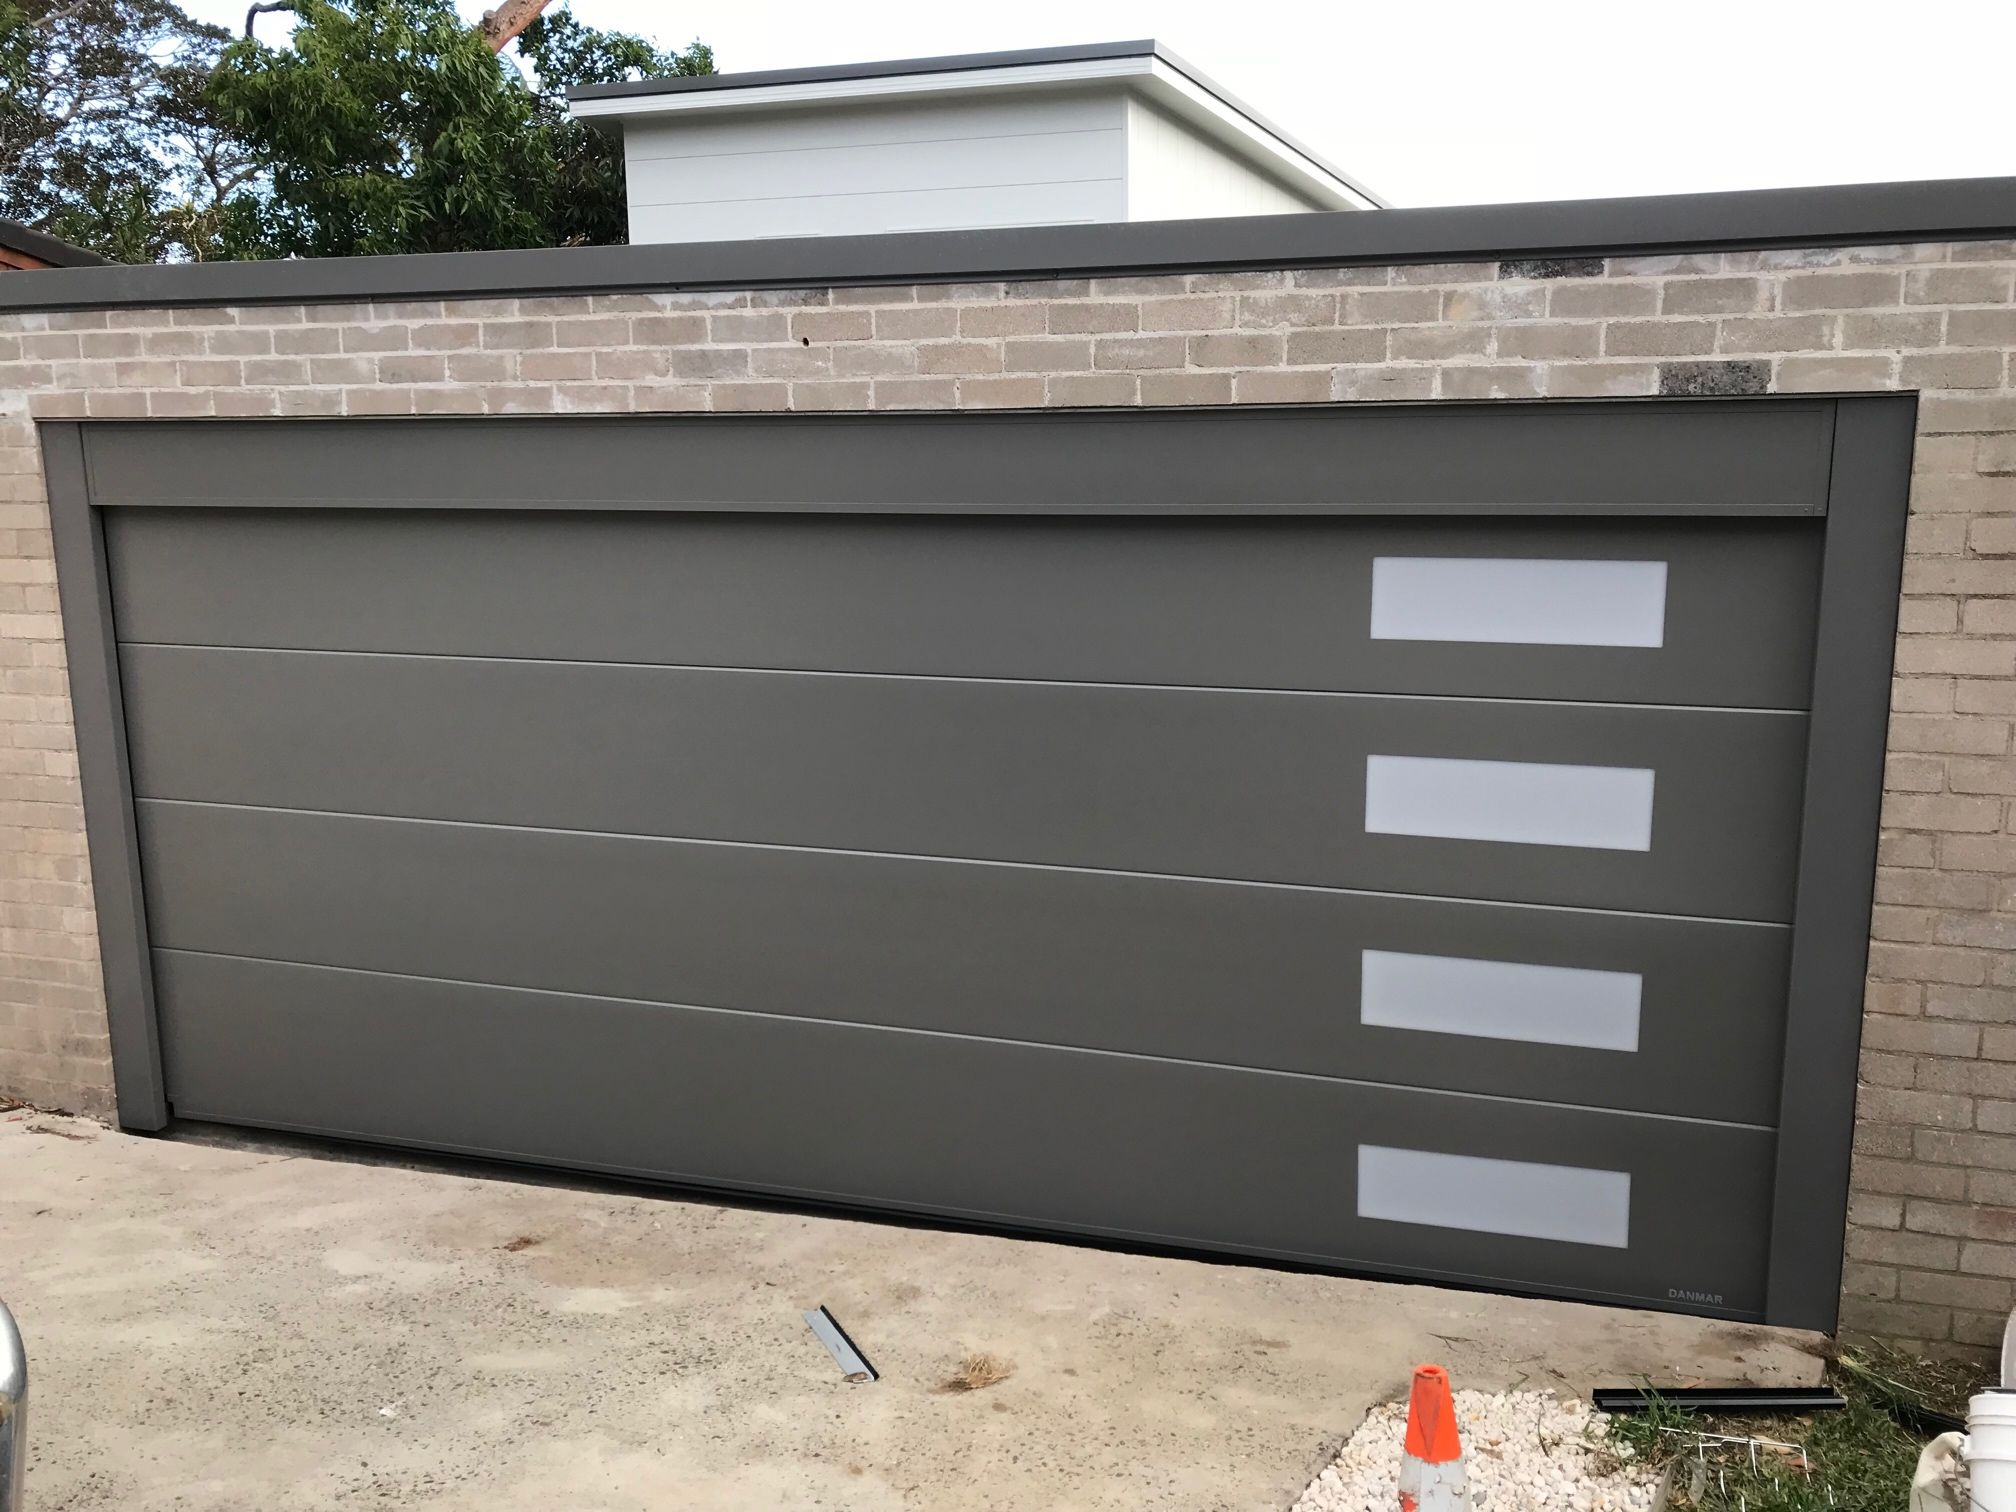 Thermoflat Insulated With Windows Installed By Impact Garage Doors